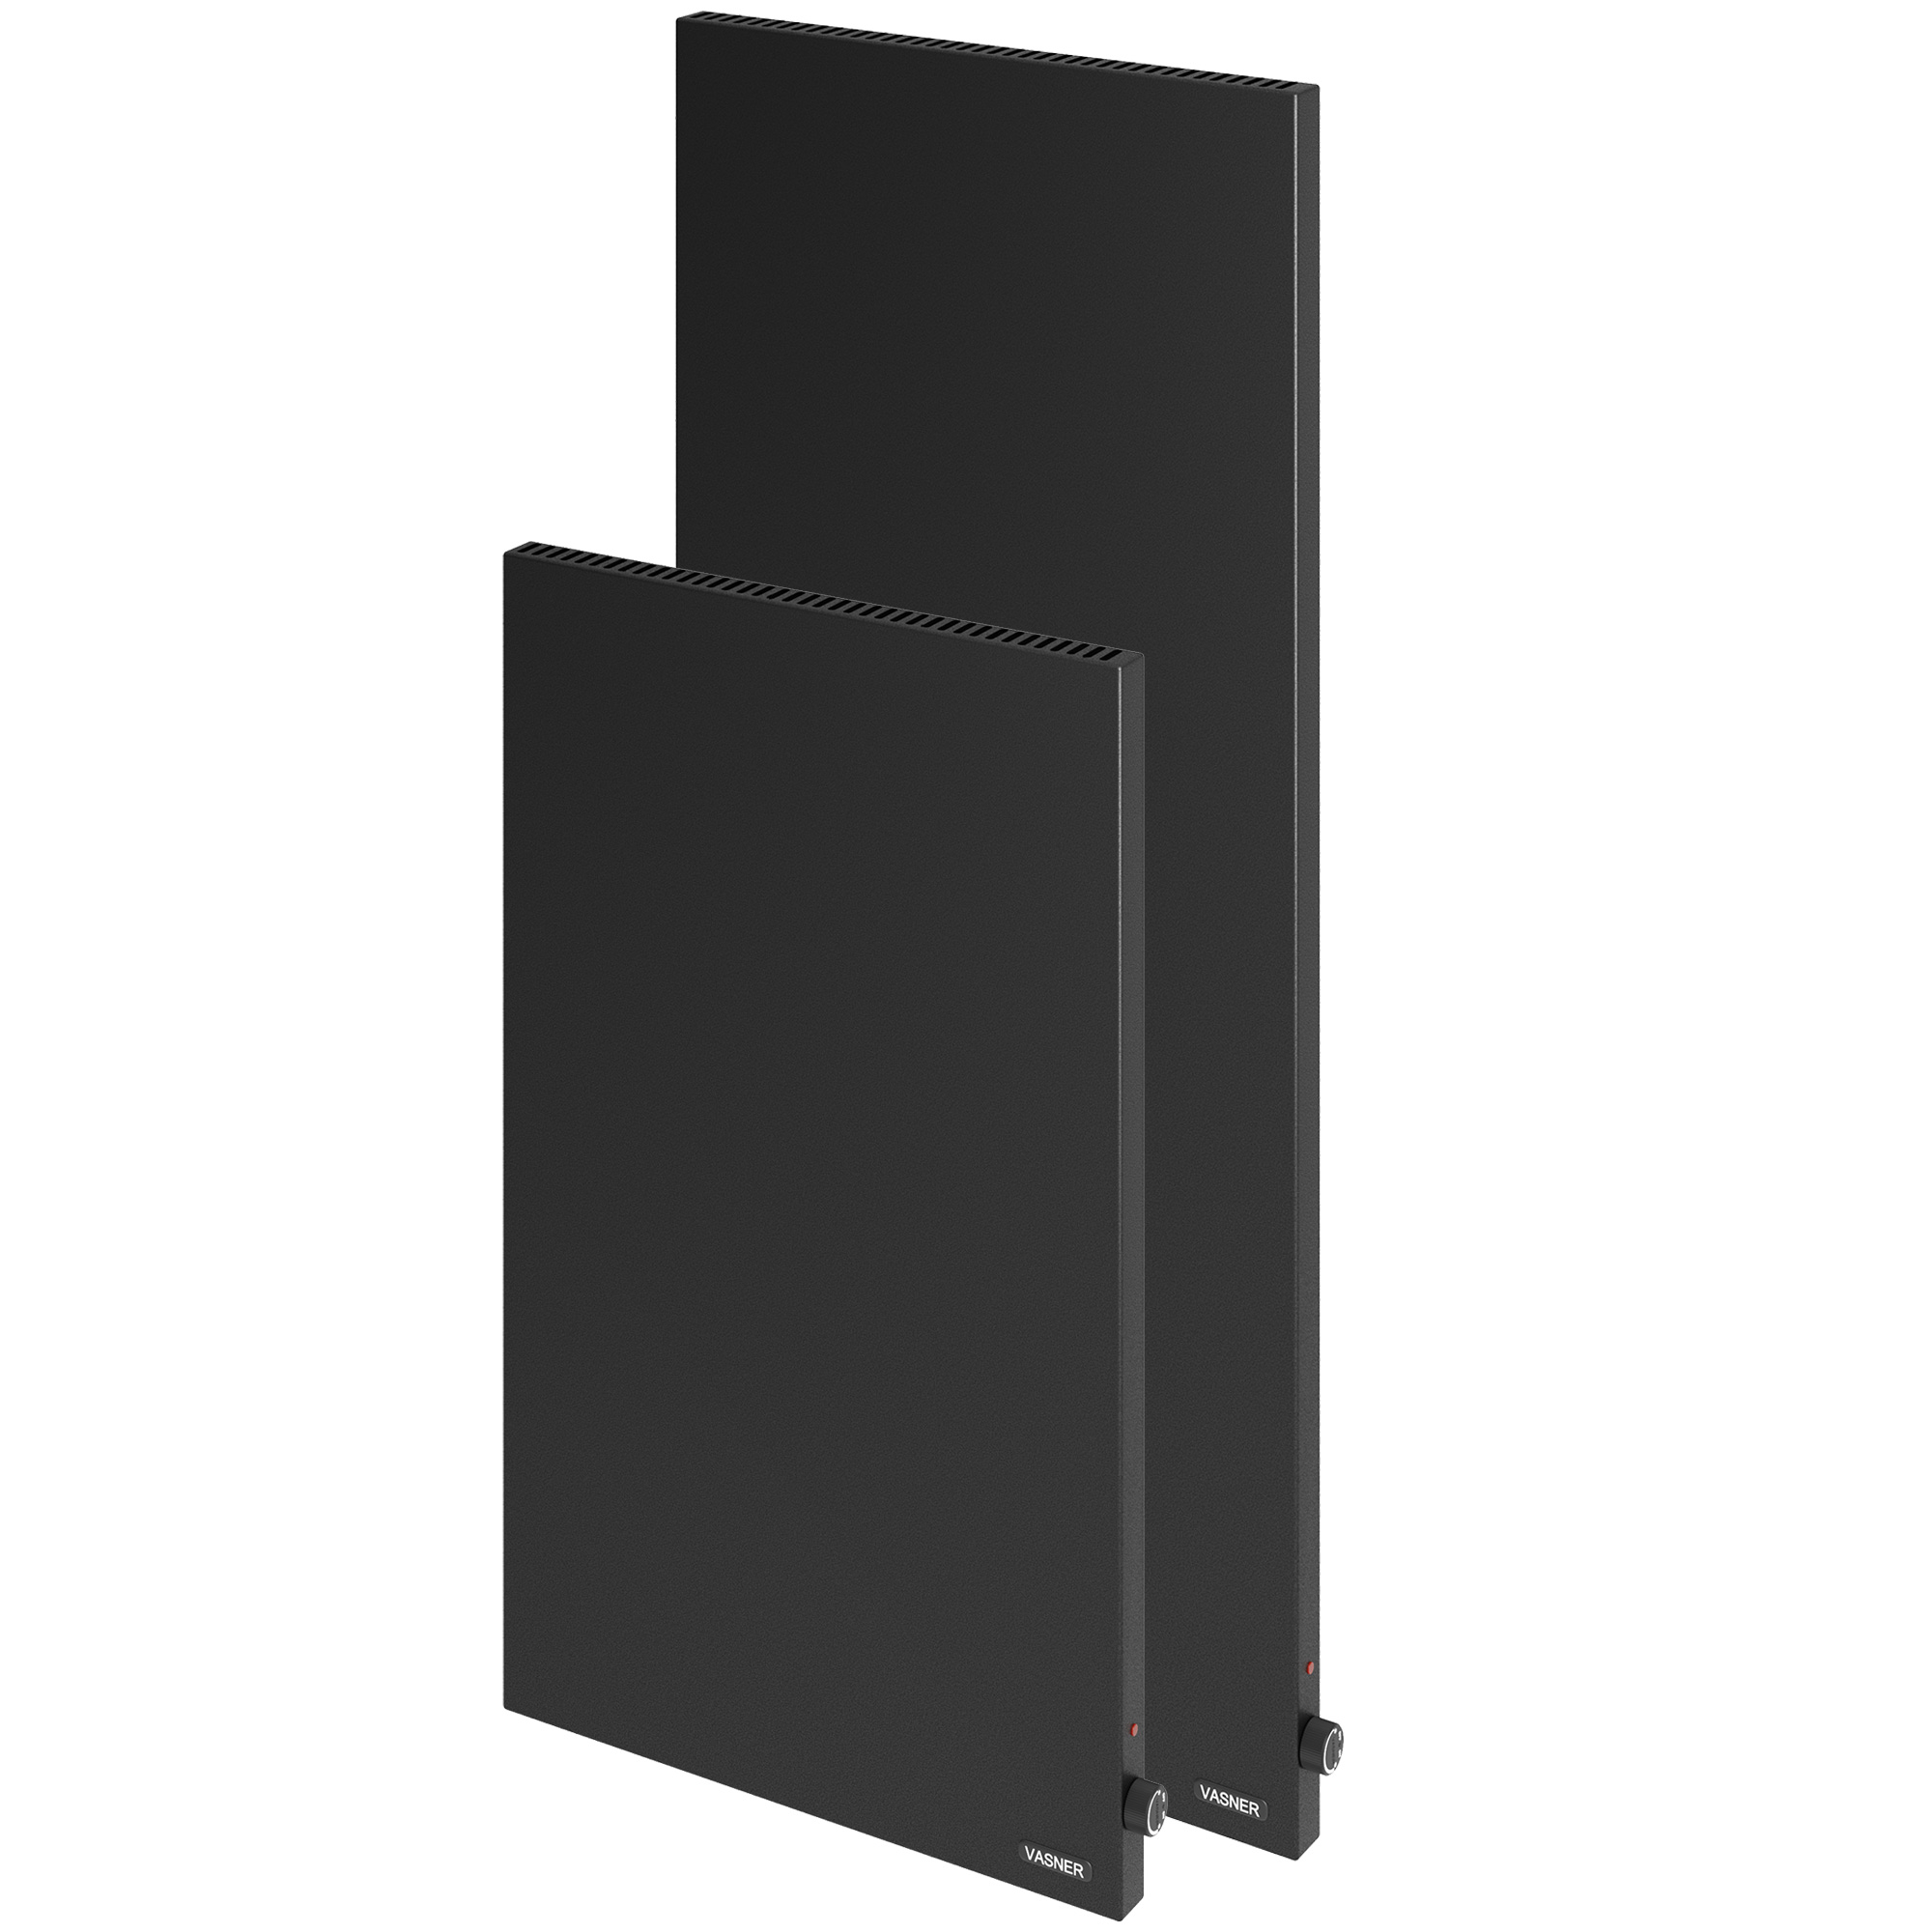 Vertical electric heaters in black with 1000 - 1200 watts